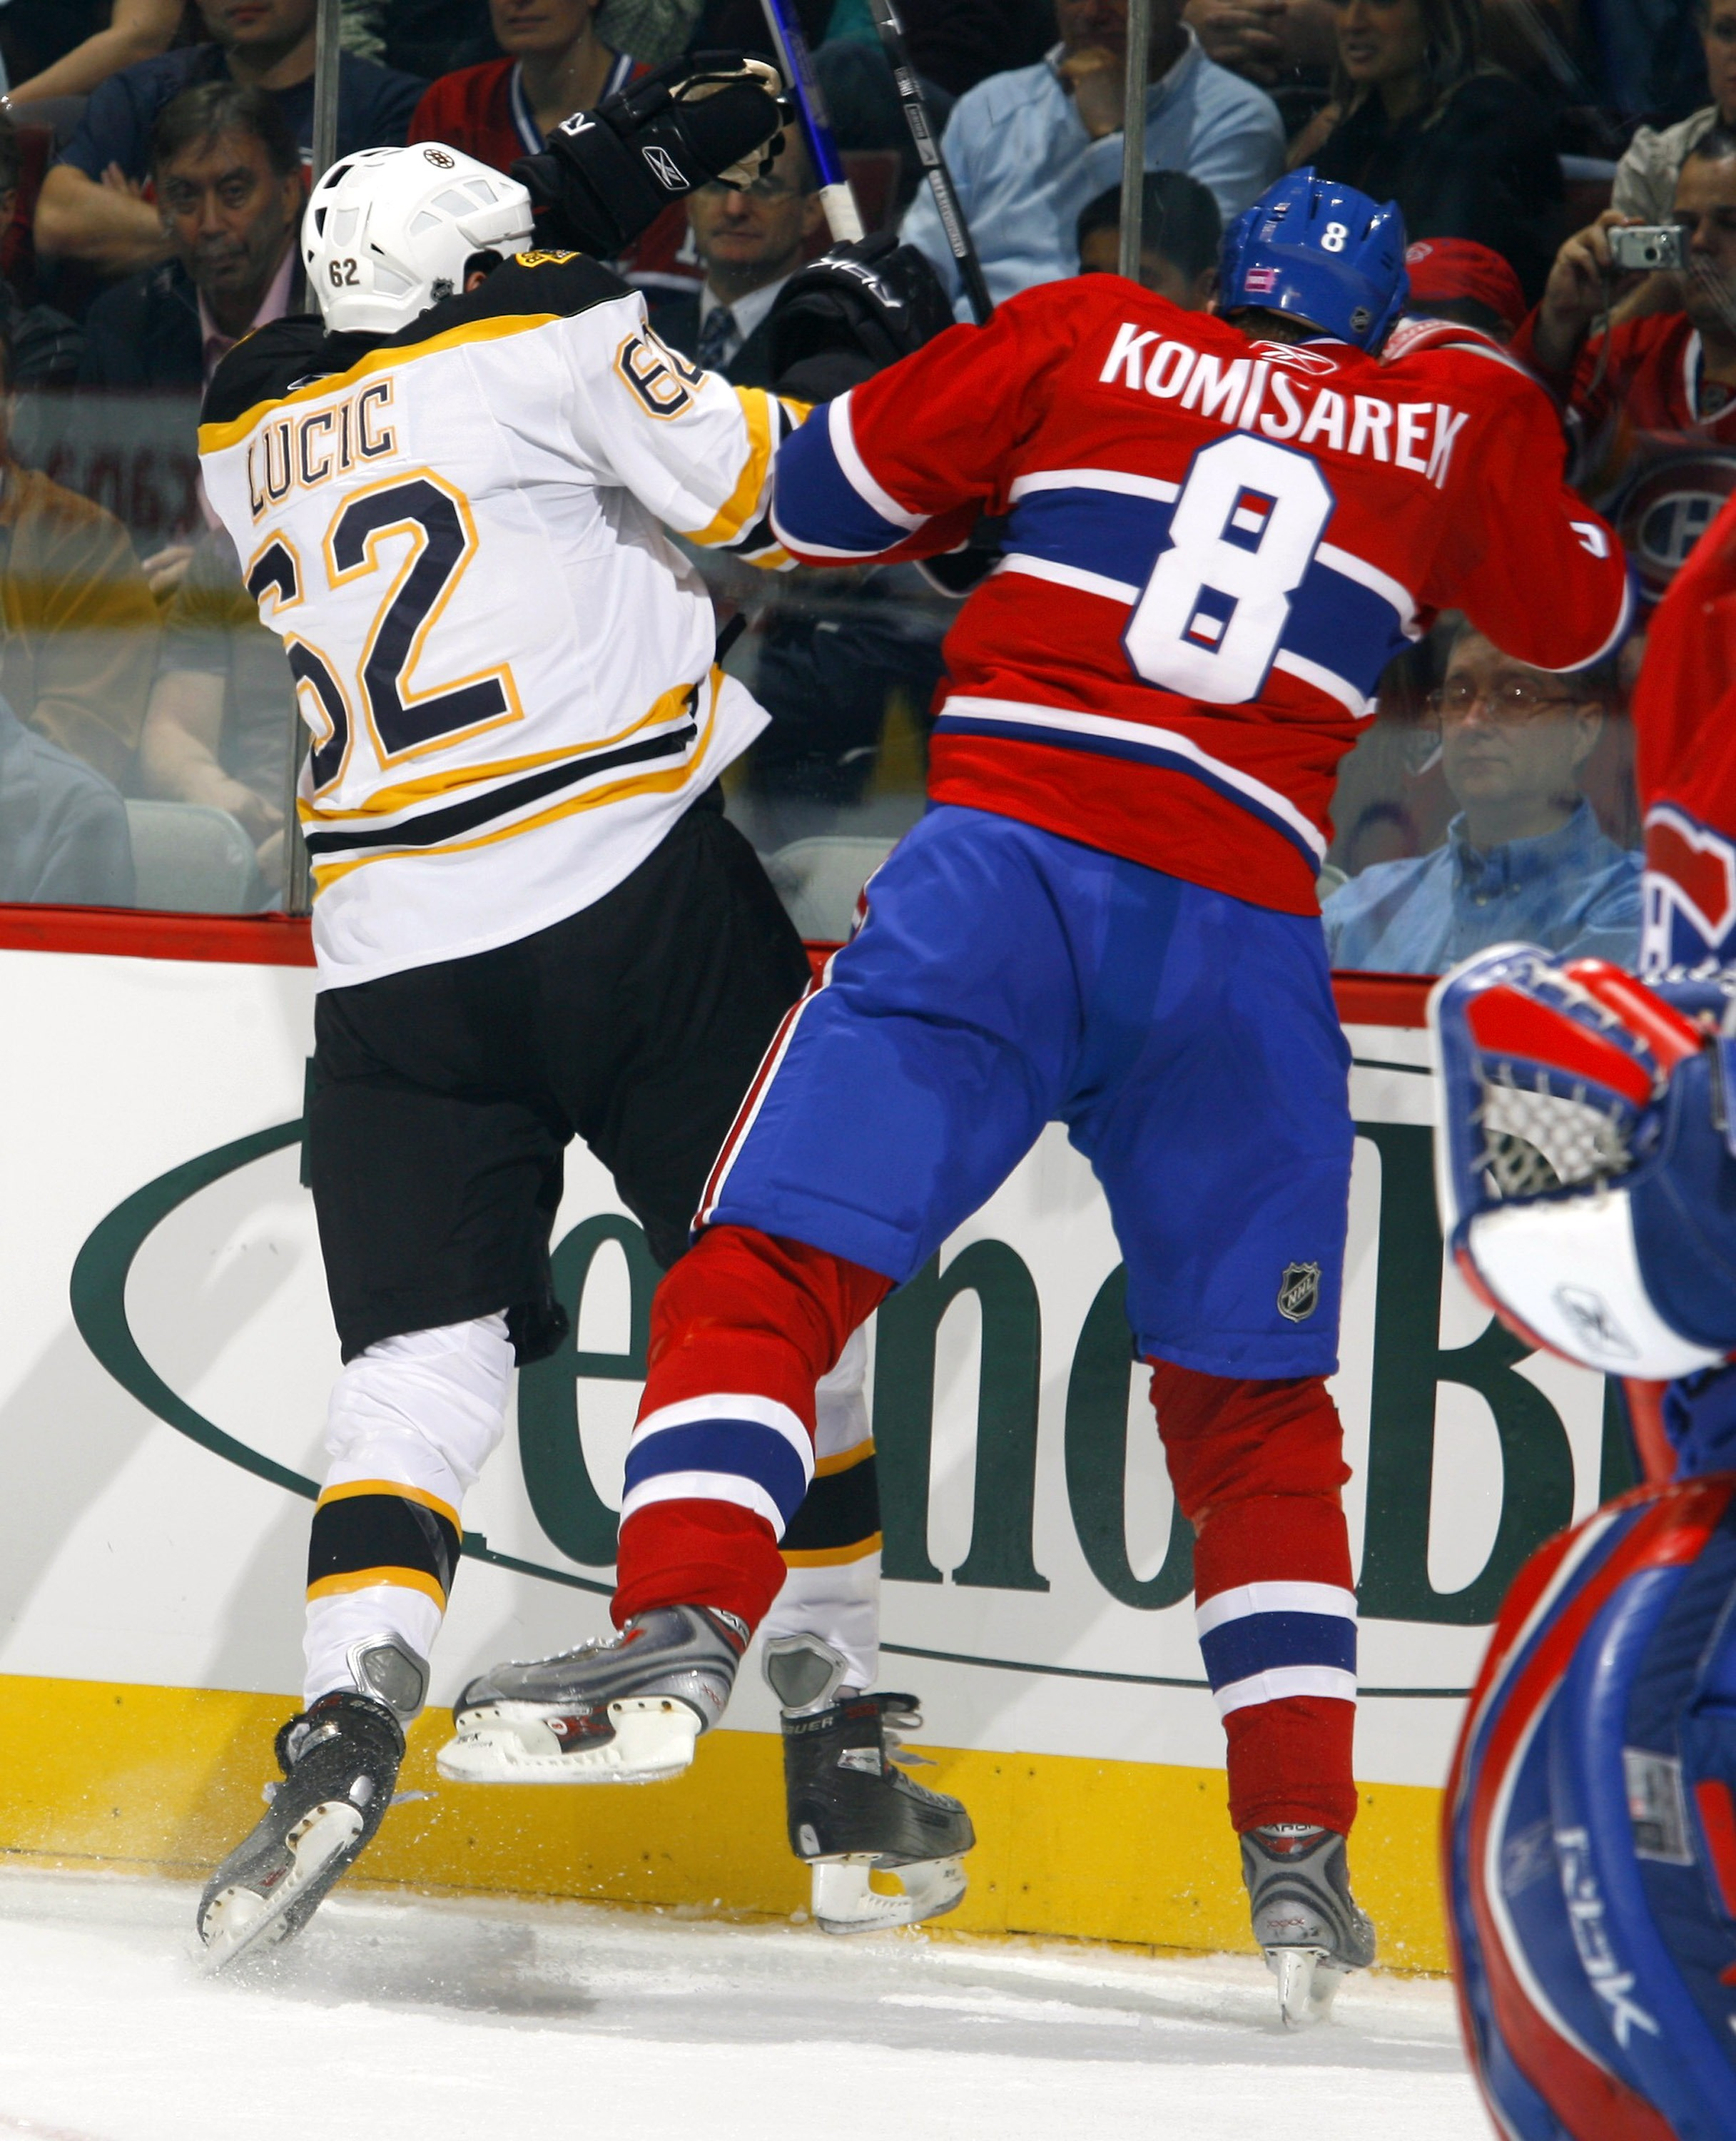 MONTREAL, CANADA - OCTOBER 22:  Milan Lucic #62 of the Boston Bruins throws a big hit on Michael Komisarek #8 of the Montreal Canadiens during first period action on October 22, 2007 at the Bell Centre in Montreal, Quebec. The Montreal Canadiens lead the